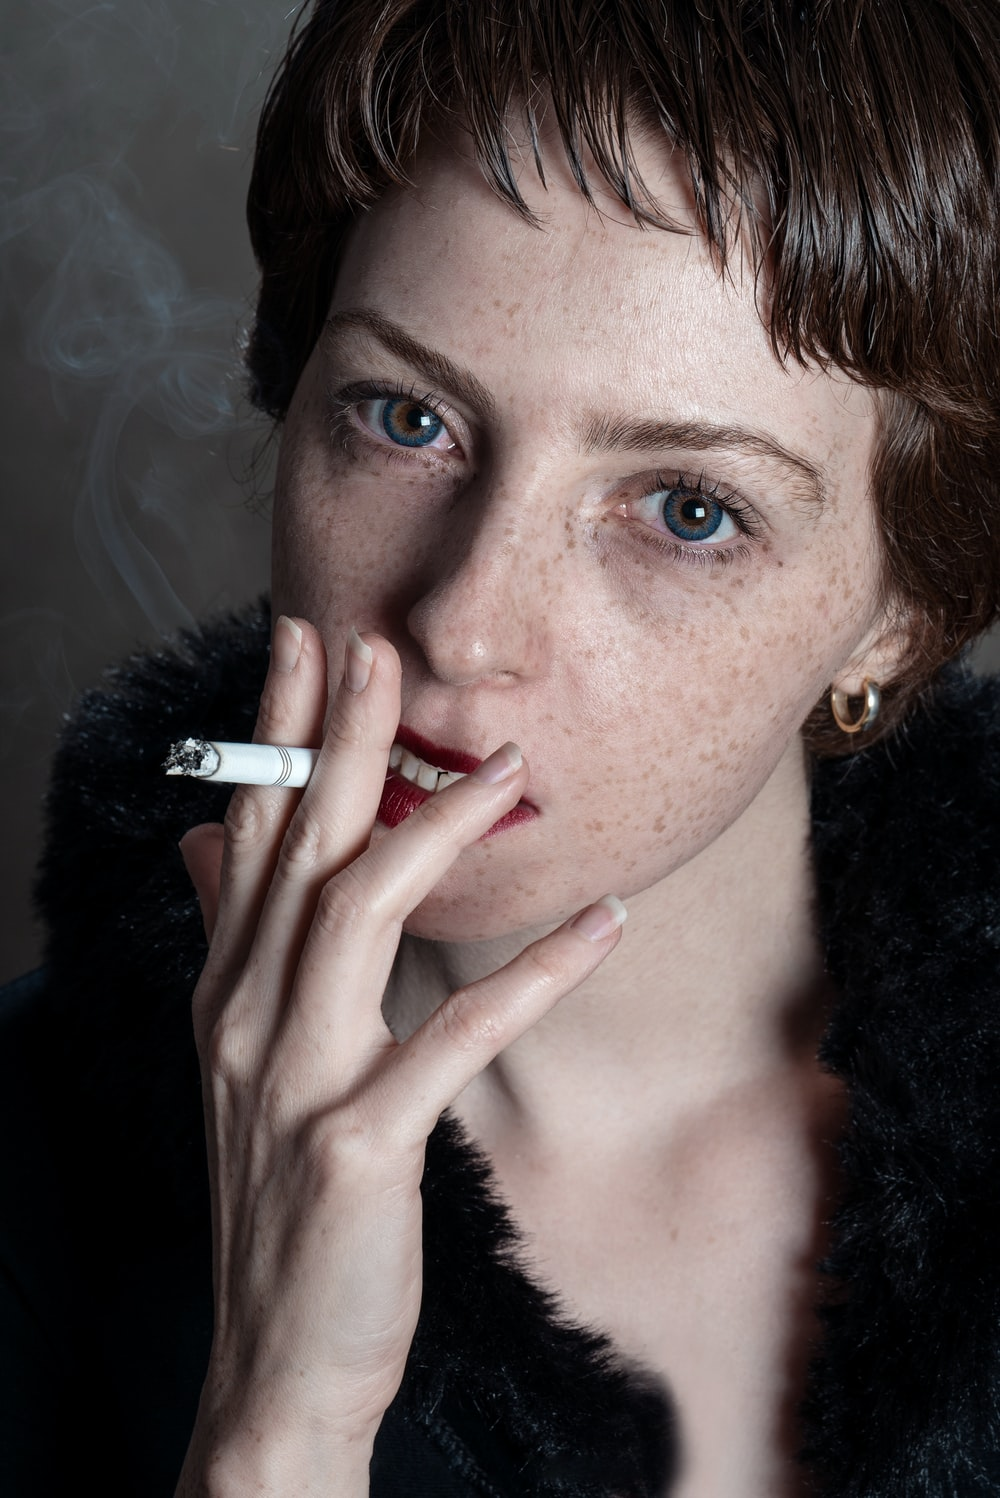 woman wearing black fur coat smoking